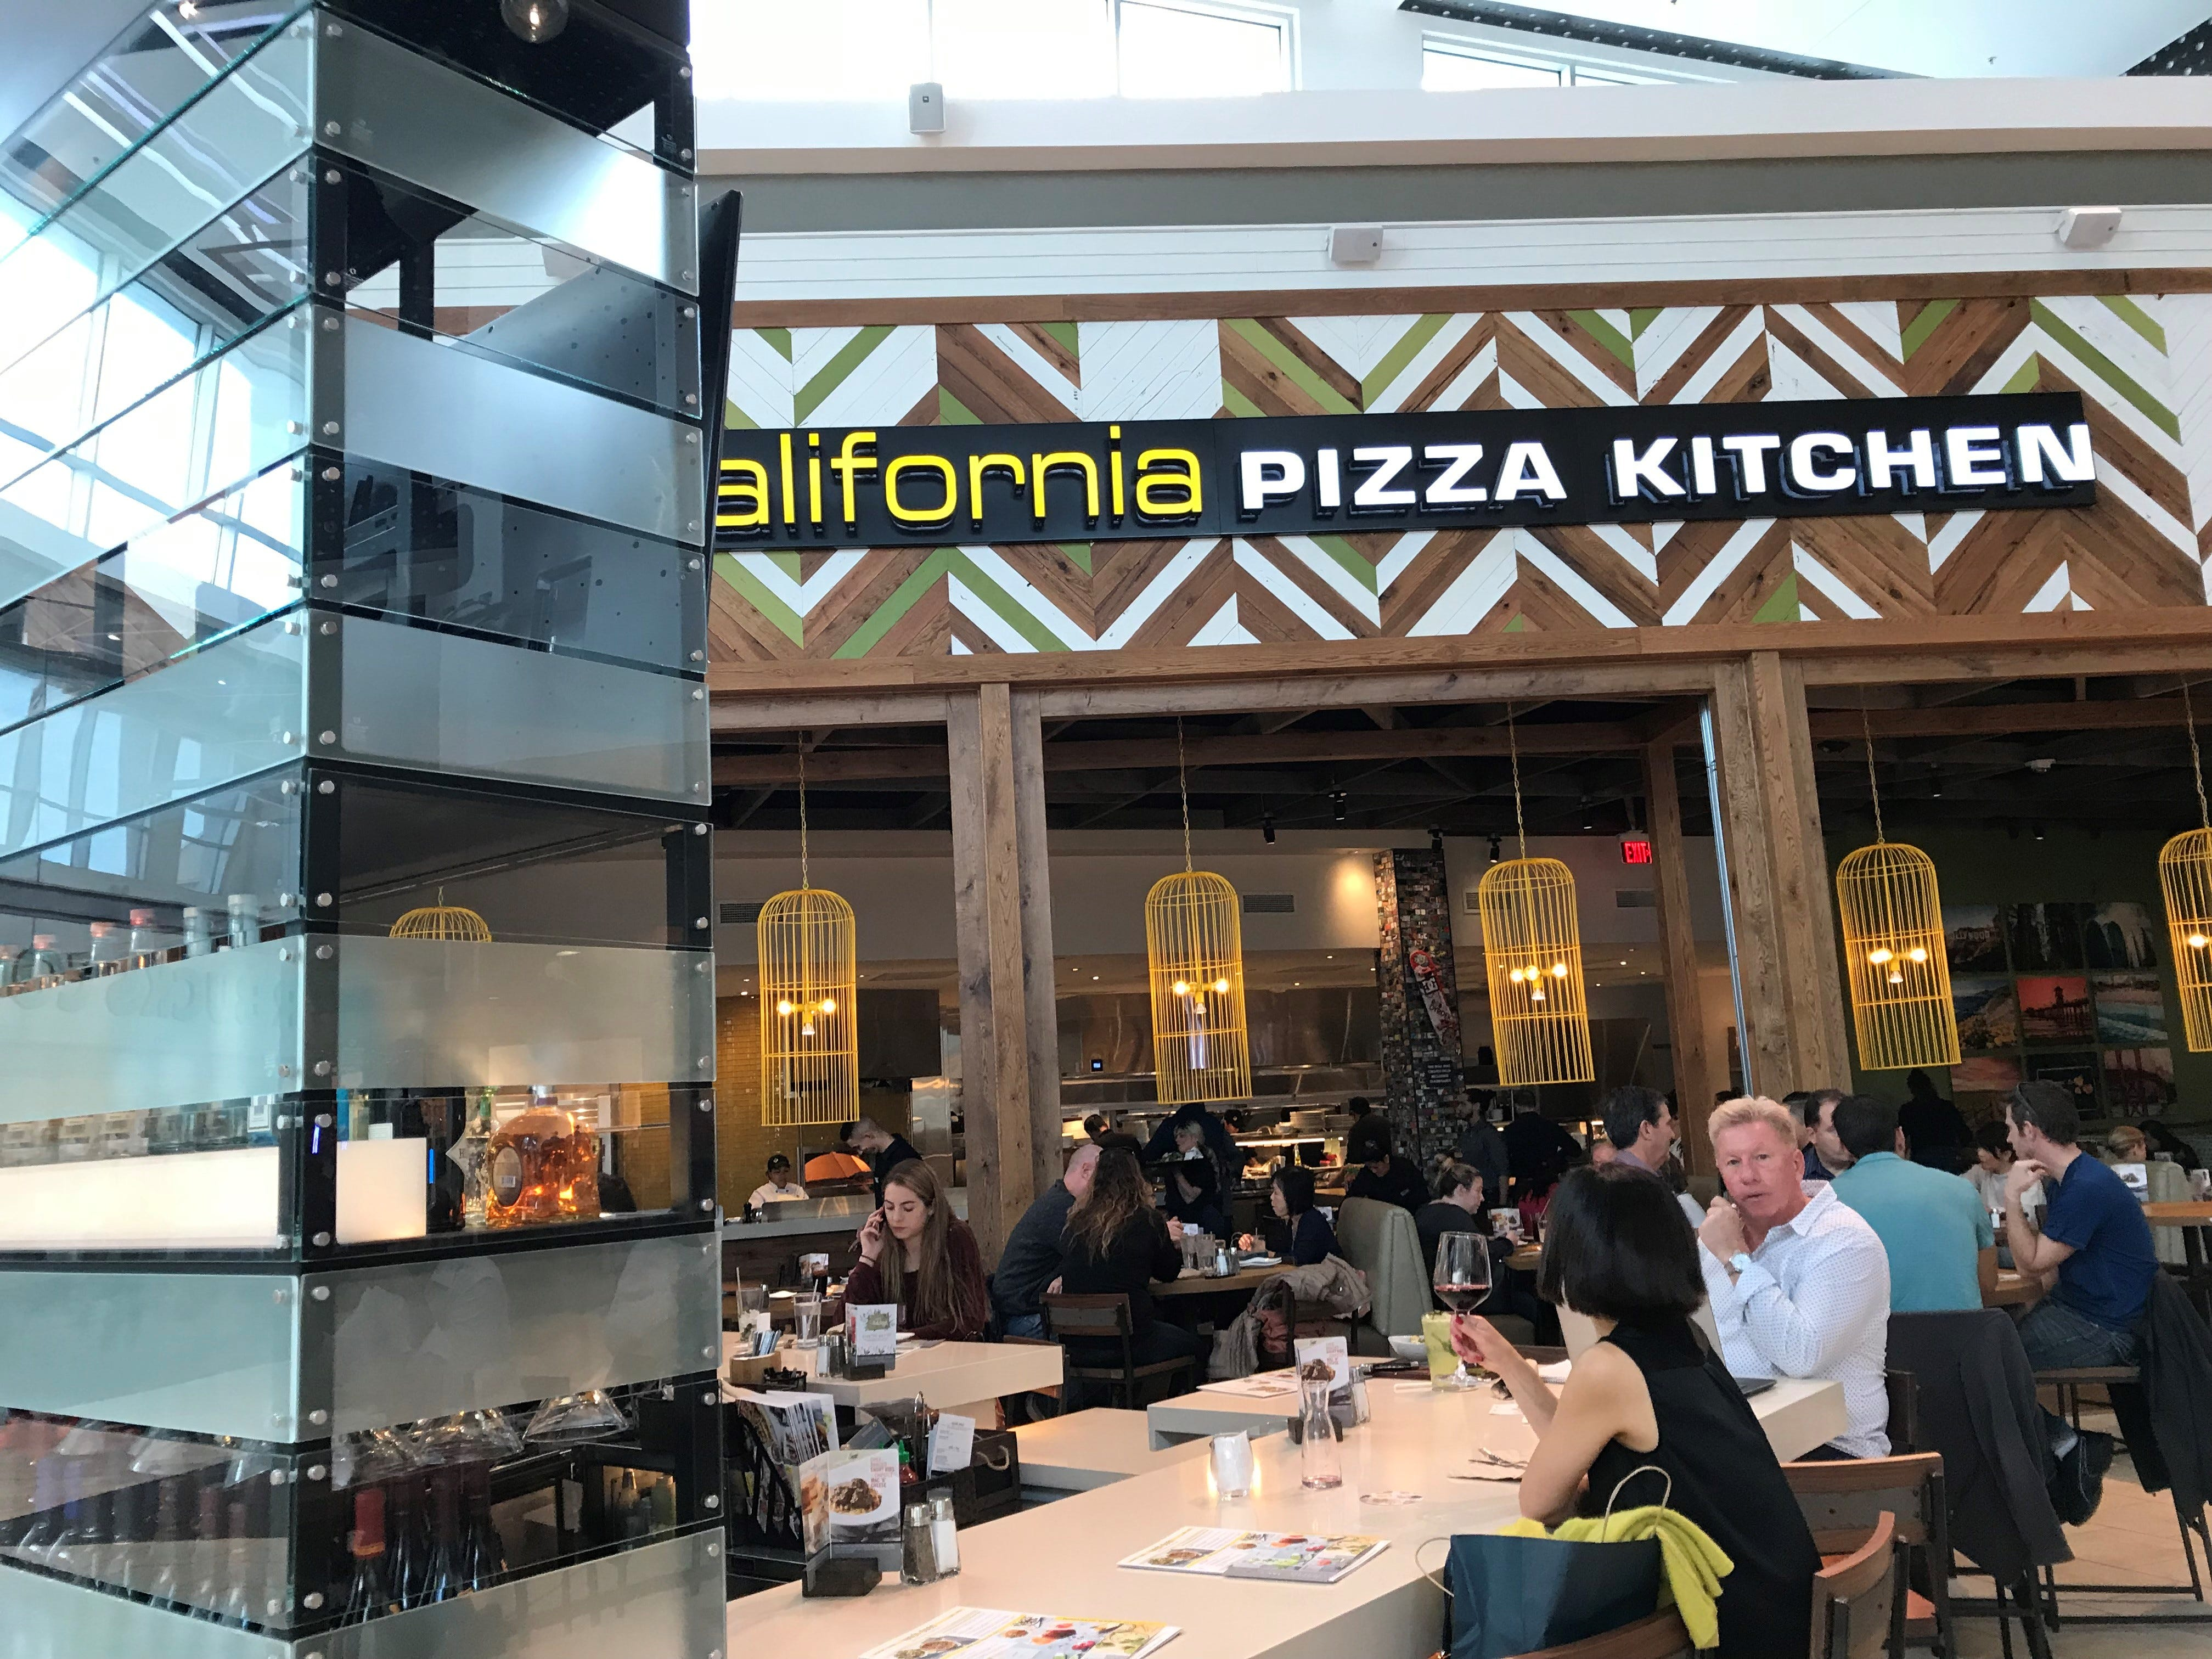 The new California Pizza Kitchen includes expanded seating in the mall's common area.